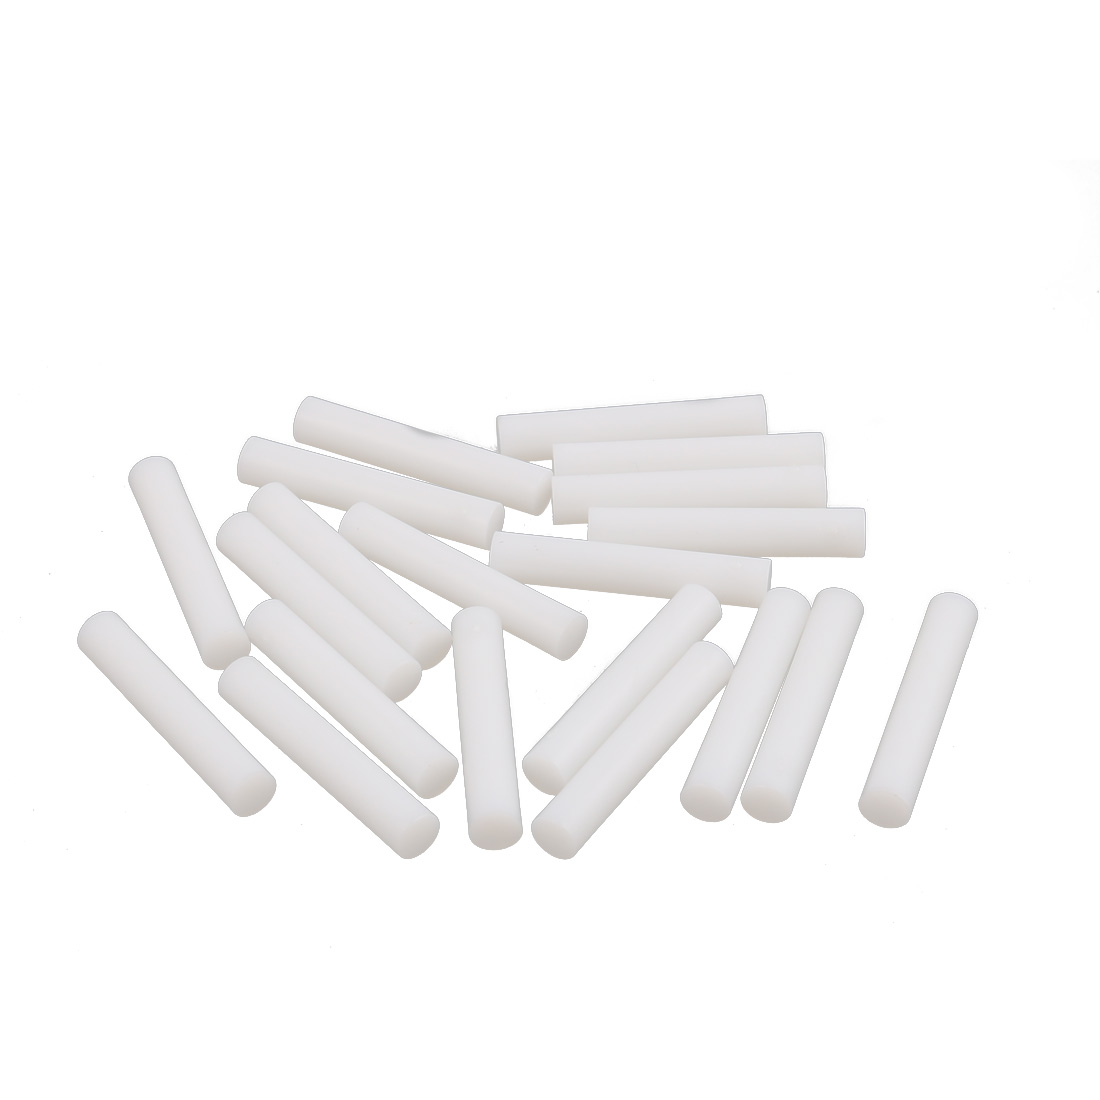 Round Plastic Insulation Column Standoff Support Spacer White 5mm Diameter 28mm Length 20Pcs